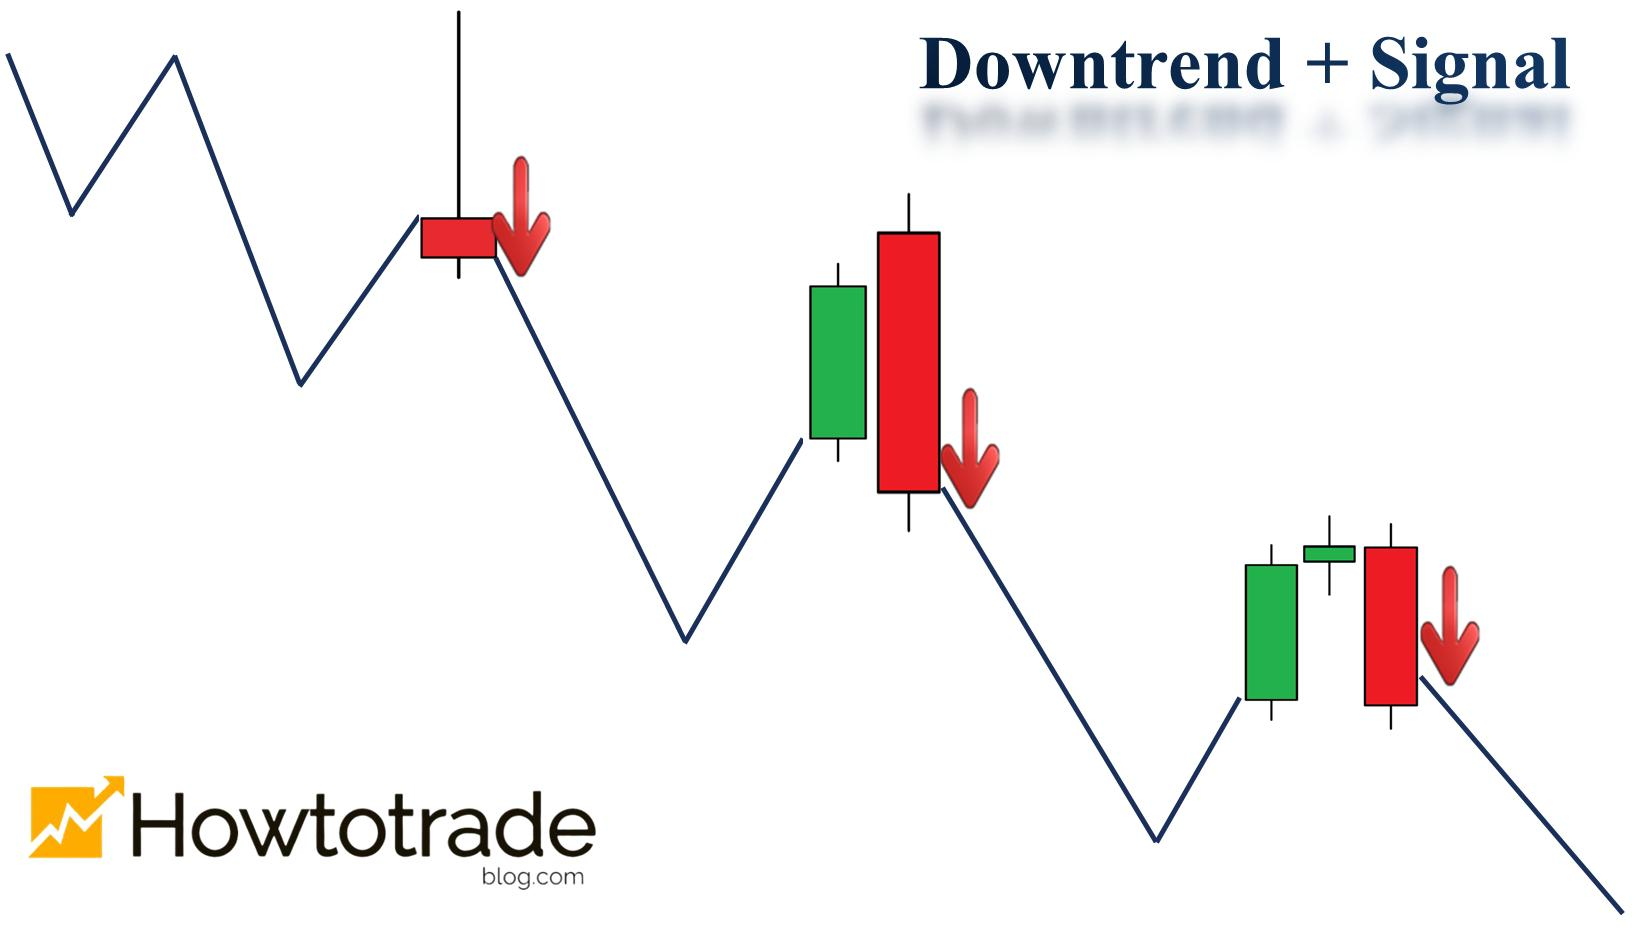 Downtrend and entry signals for DOWN orders